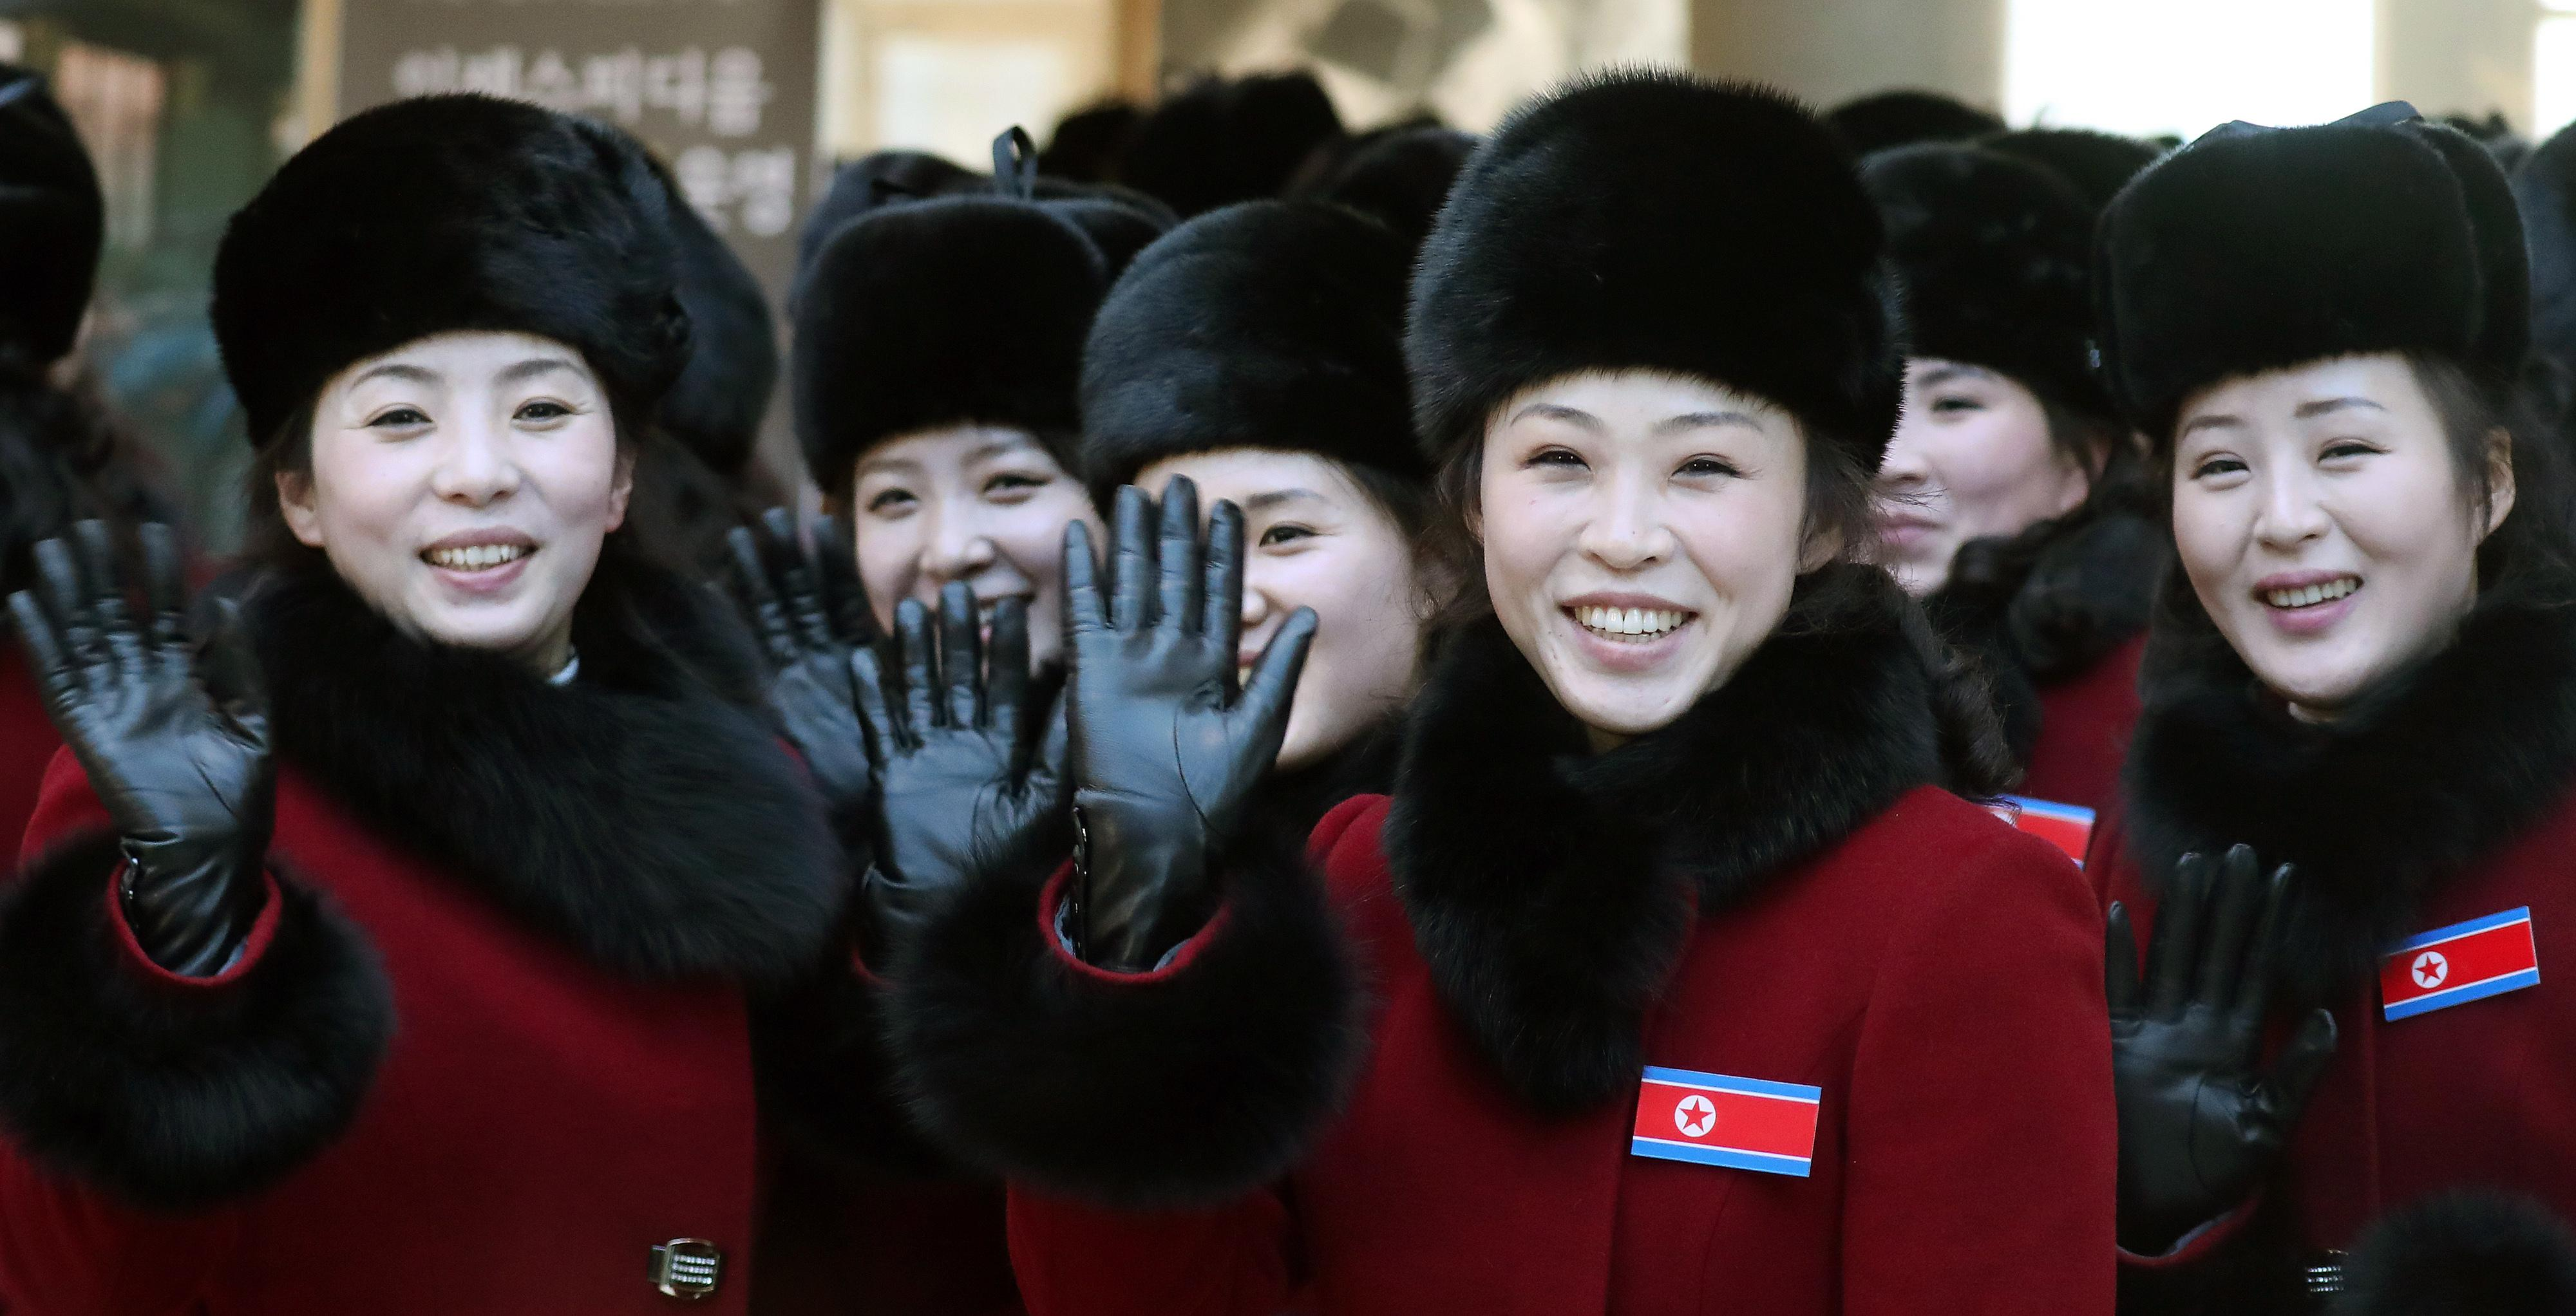 North Korean cheering squads wave upon their arrival at a stadium in Inje, South Korea, Wednesday, Feb. 7, 2018. A North Korean delegation, including members of a state-trained cheering group, arrived in South Korea on Wednesday for the Pyeongchang Winter Olympics. (Yang Yong-suk/Yonhap via AP)